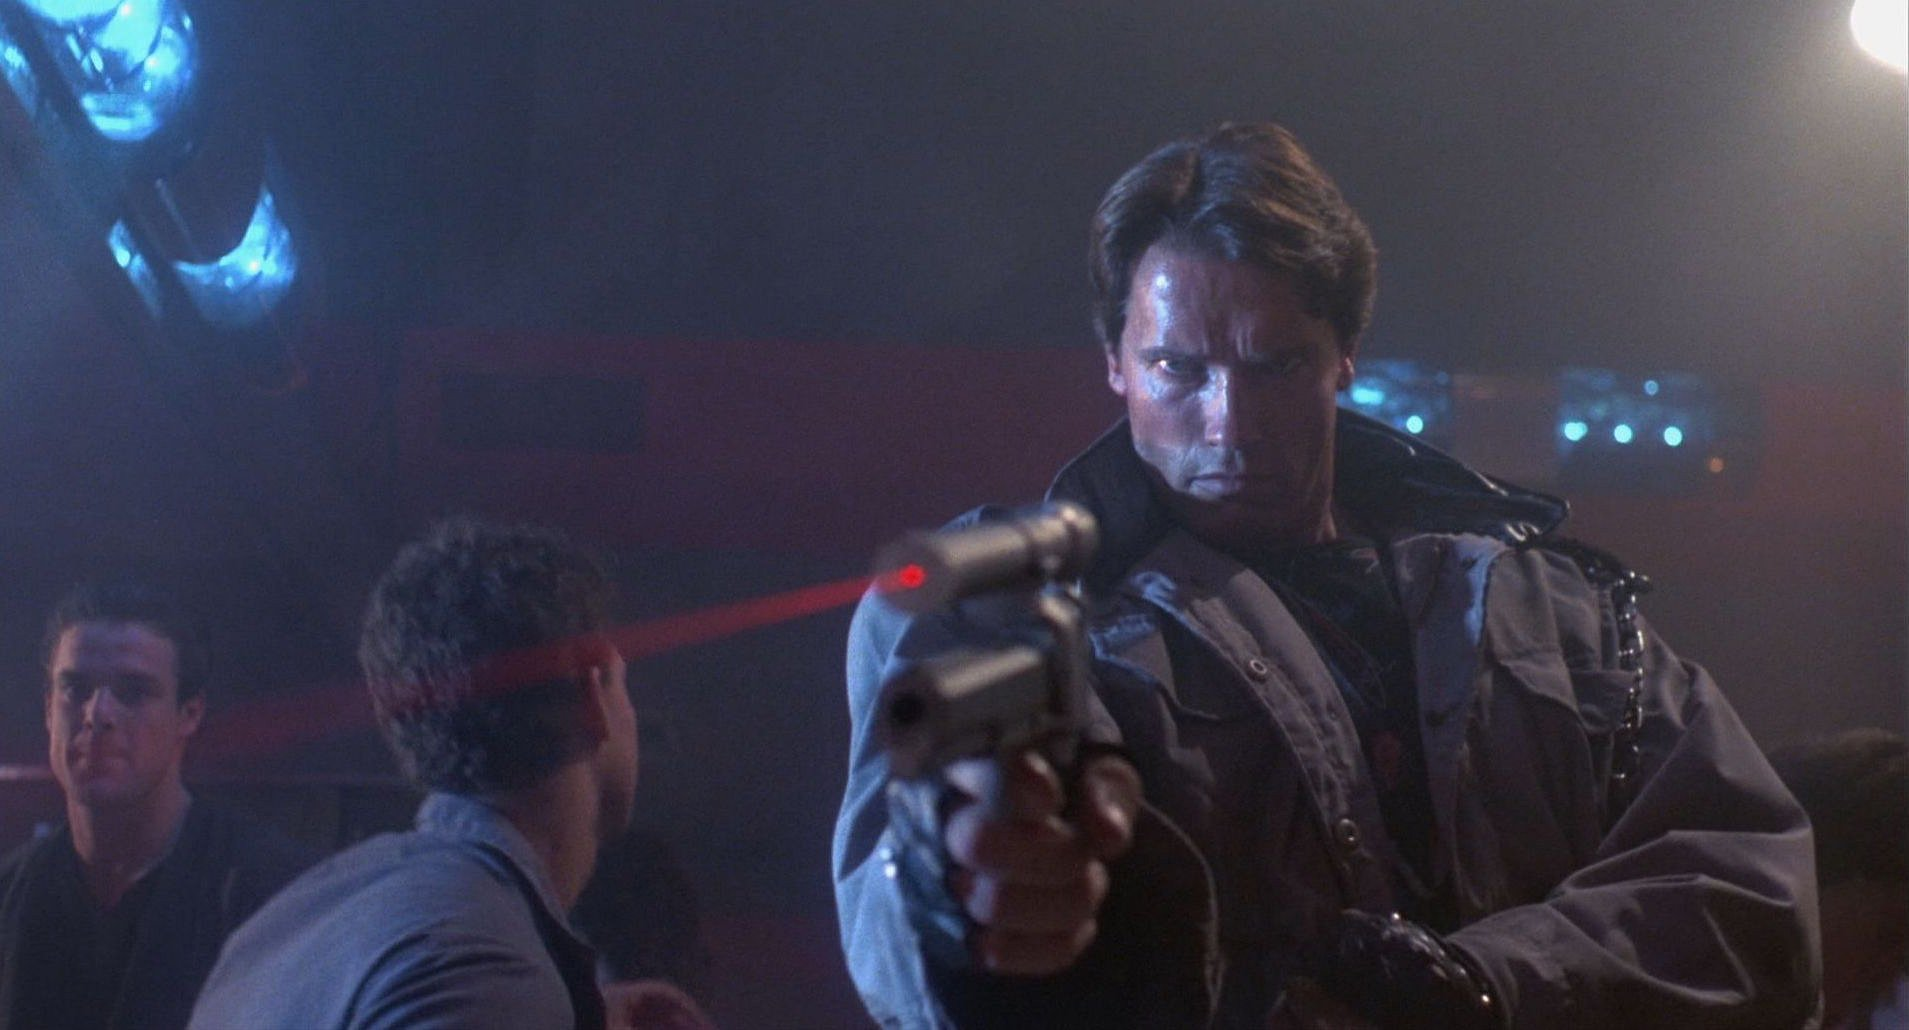 The modestly budgeted sci-fi action film The Terminator (covered in AC April '85) became a massive hit, launching the careers not only of star Arnold Schwarzenegger and writer-director James Cameron, but also cinematographer Adam Greenberg, ASC. The trio would re-team for the sequel, Terminator 2: Judgment Day (covered in AC July '91).